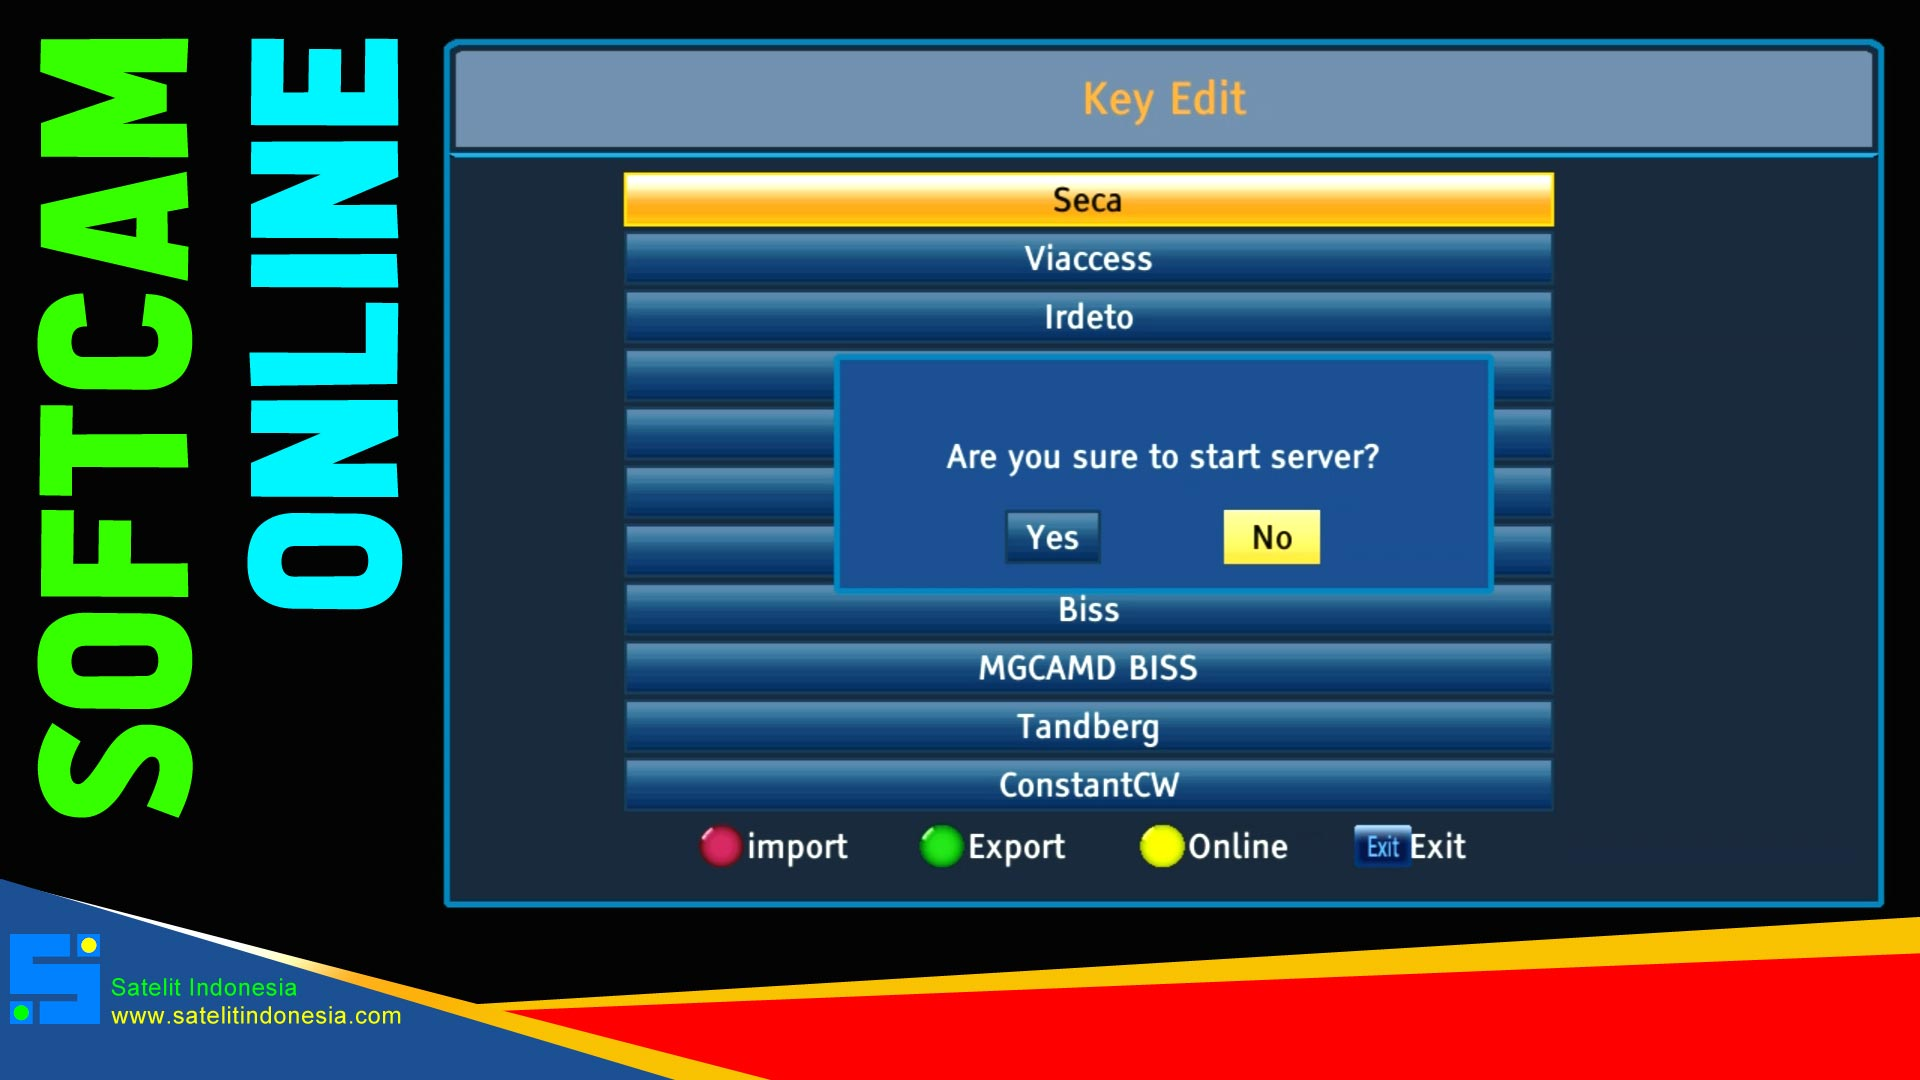 Cara Import Softcam Key Skybox A1 New Plus dari Internet